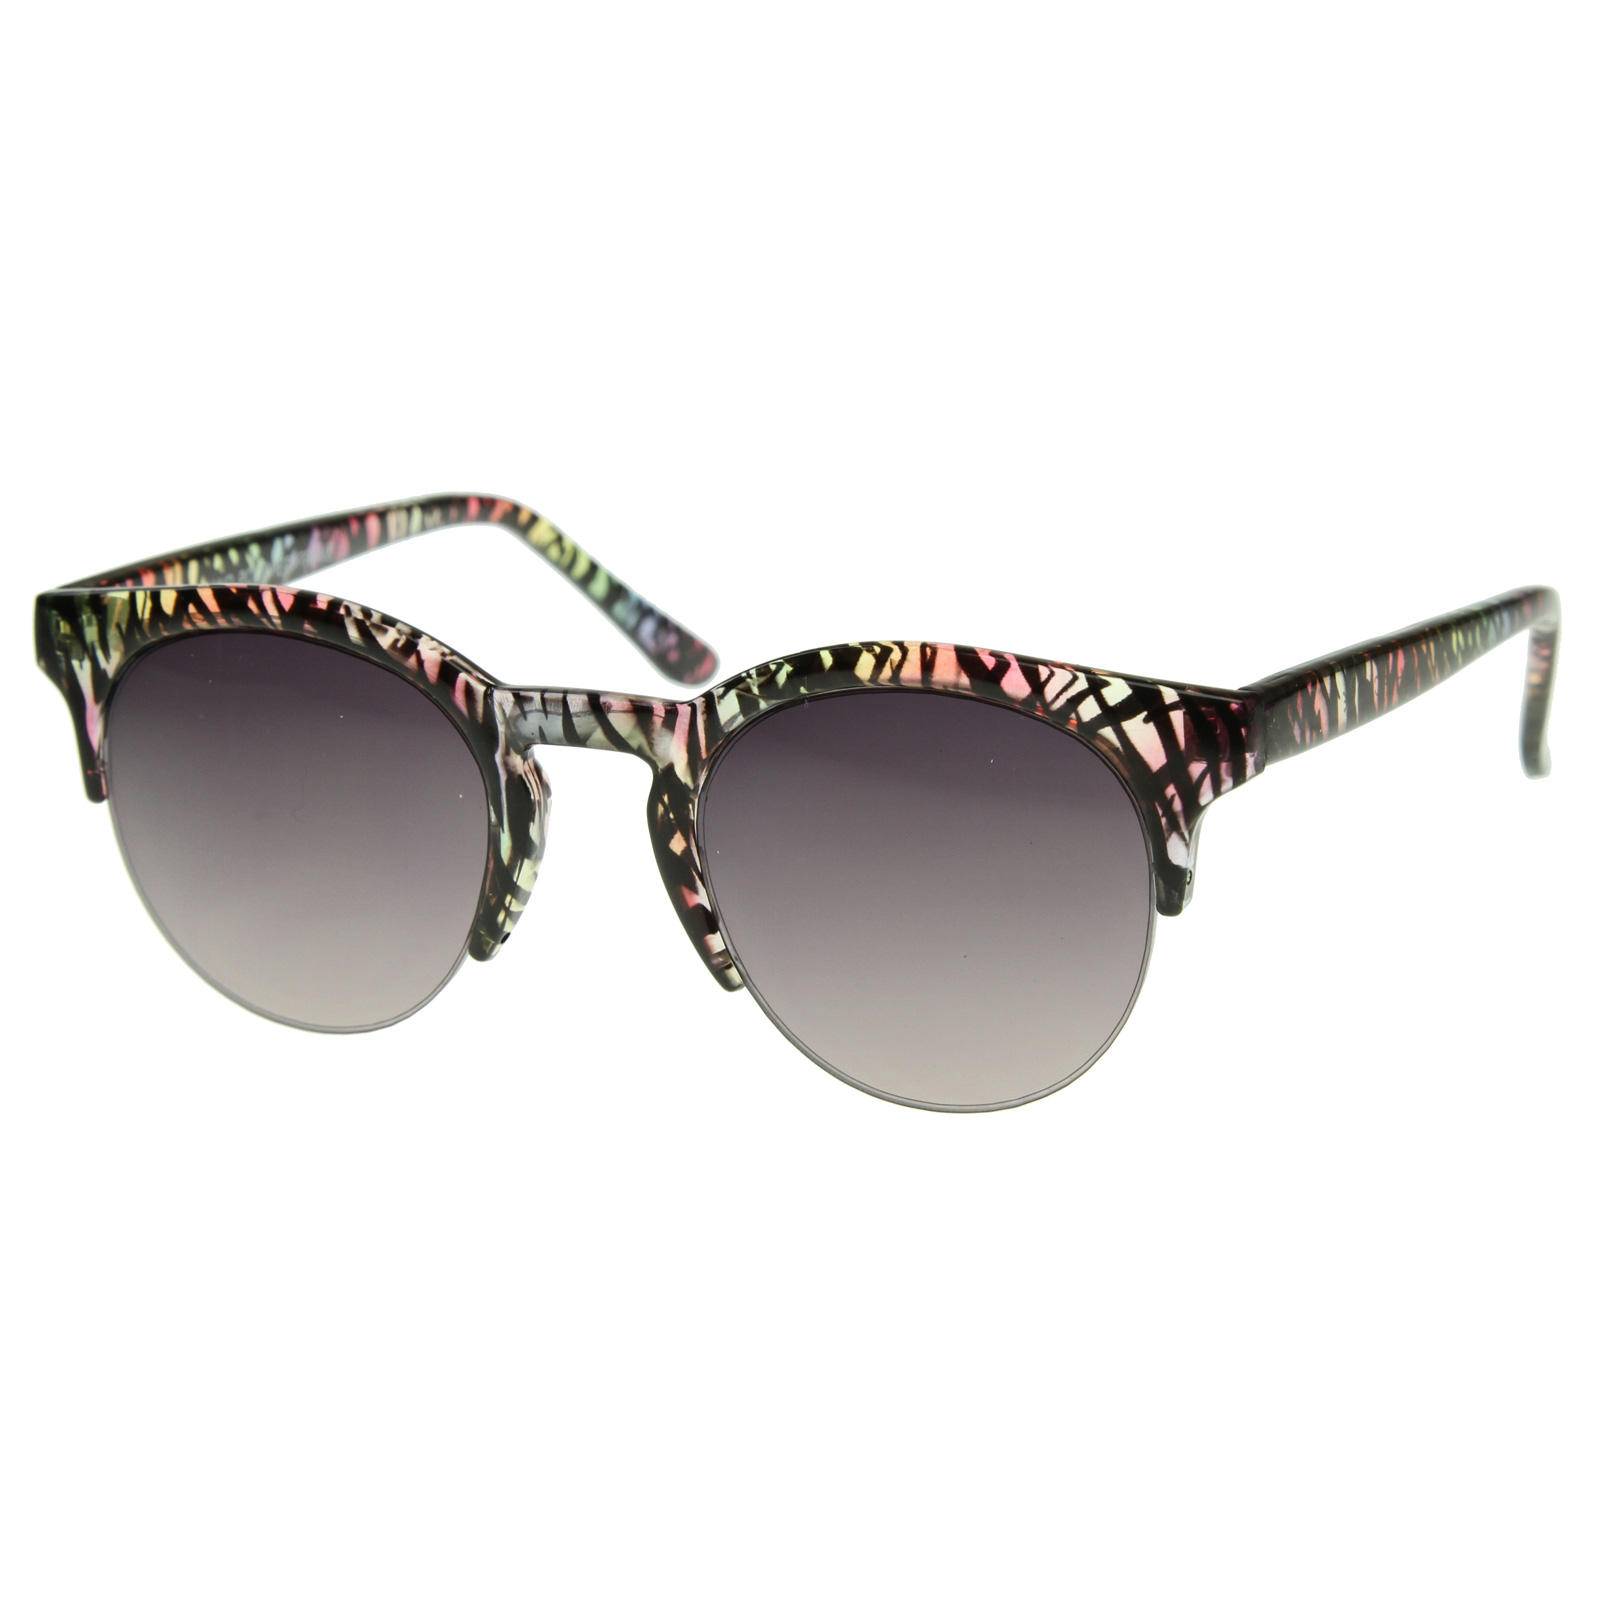 Exquisite-Ladies-NYC-Round-Half-Frame-Colorful-Prints-Fashion-Sunglasses-8522